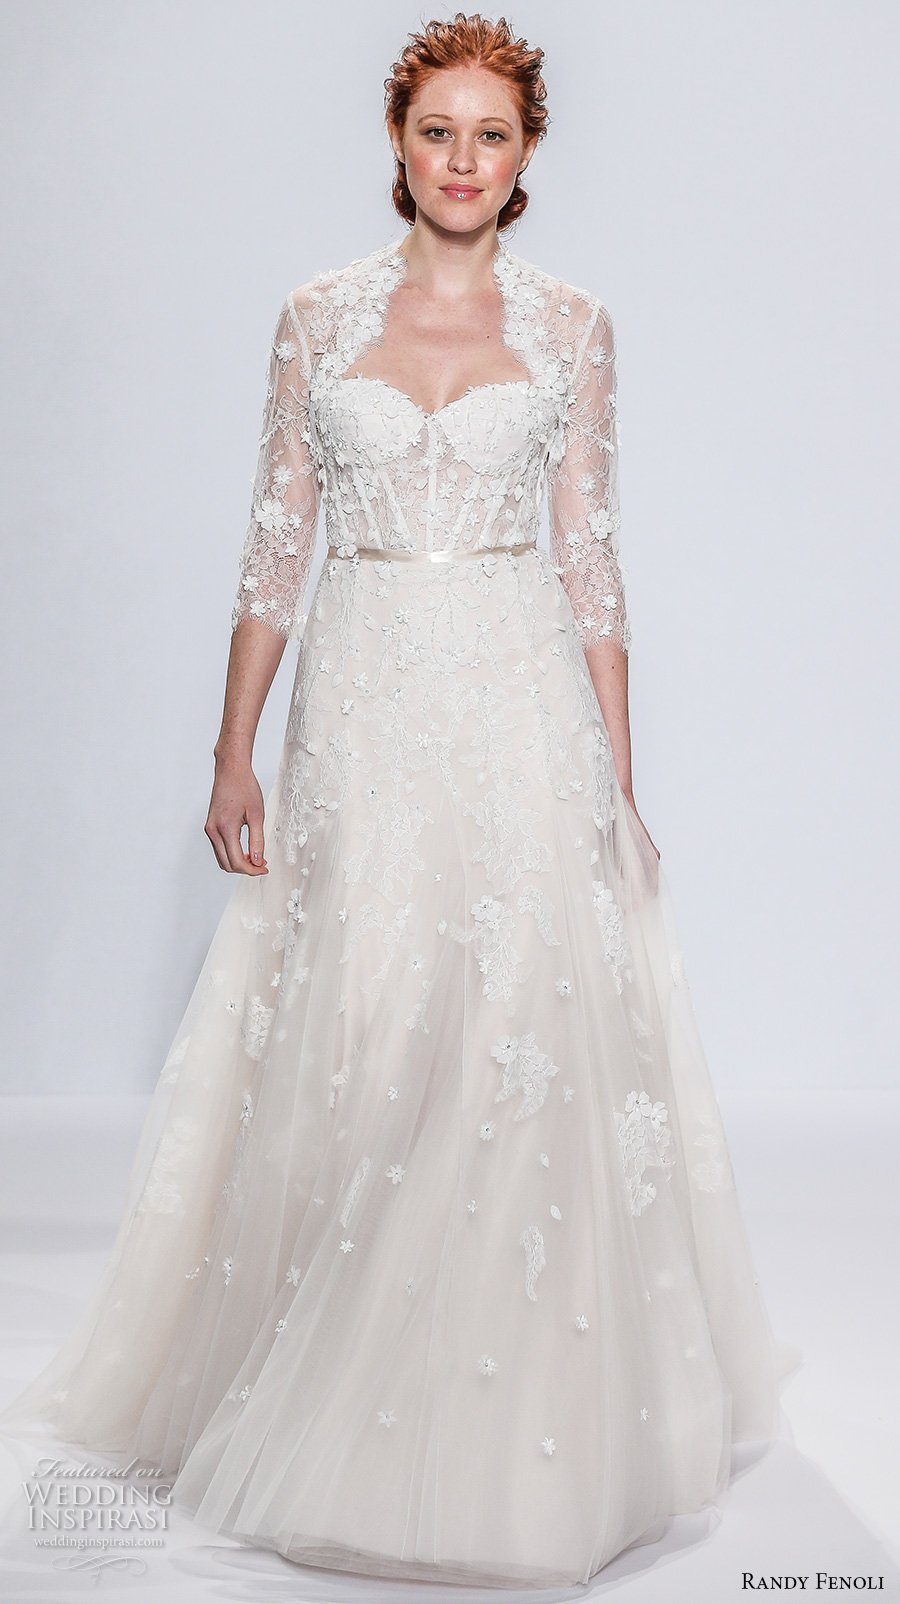 randy fenoli spring 2018 bridal three quarter sleeves halter neck bolero sweetheart neckline heavily embellished bodice bustier elegant romantic a  line wedding dress sweep train (07) mv